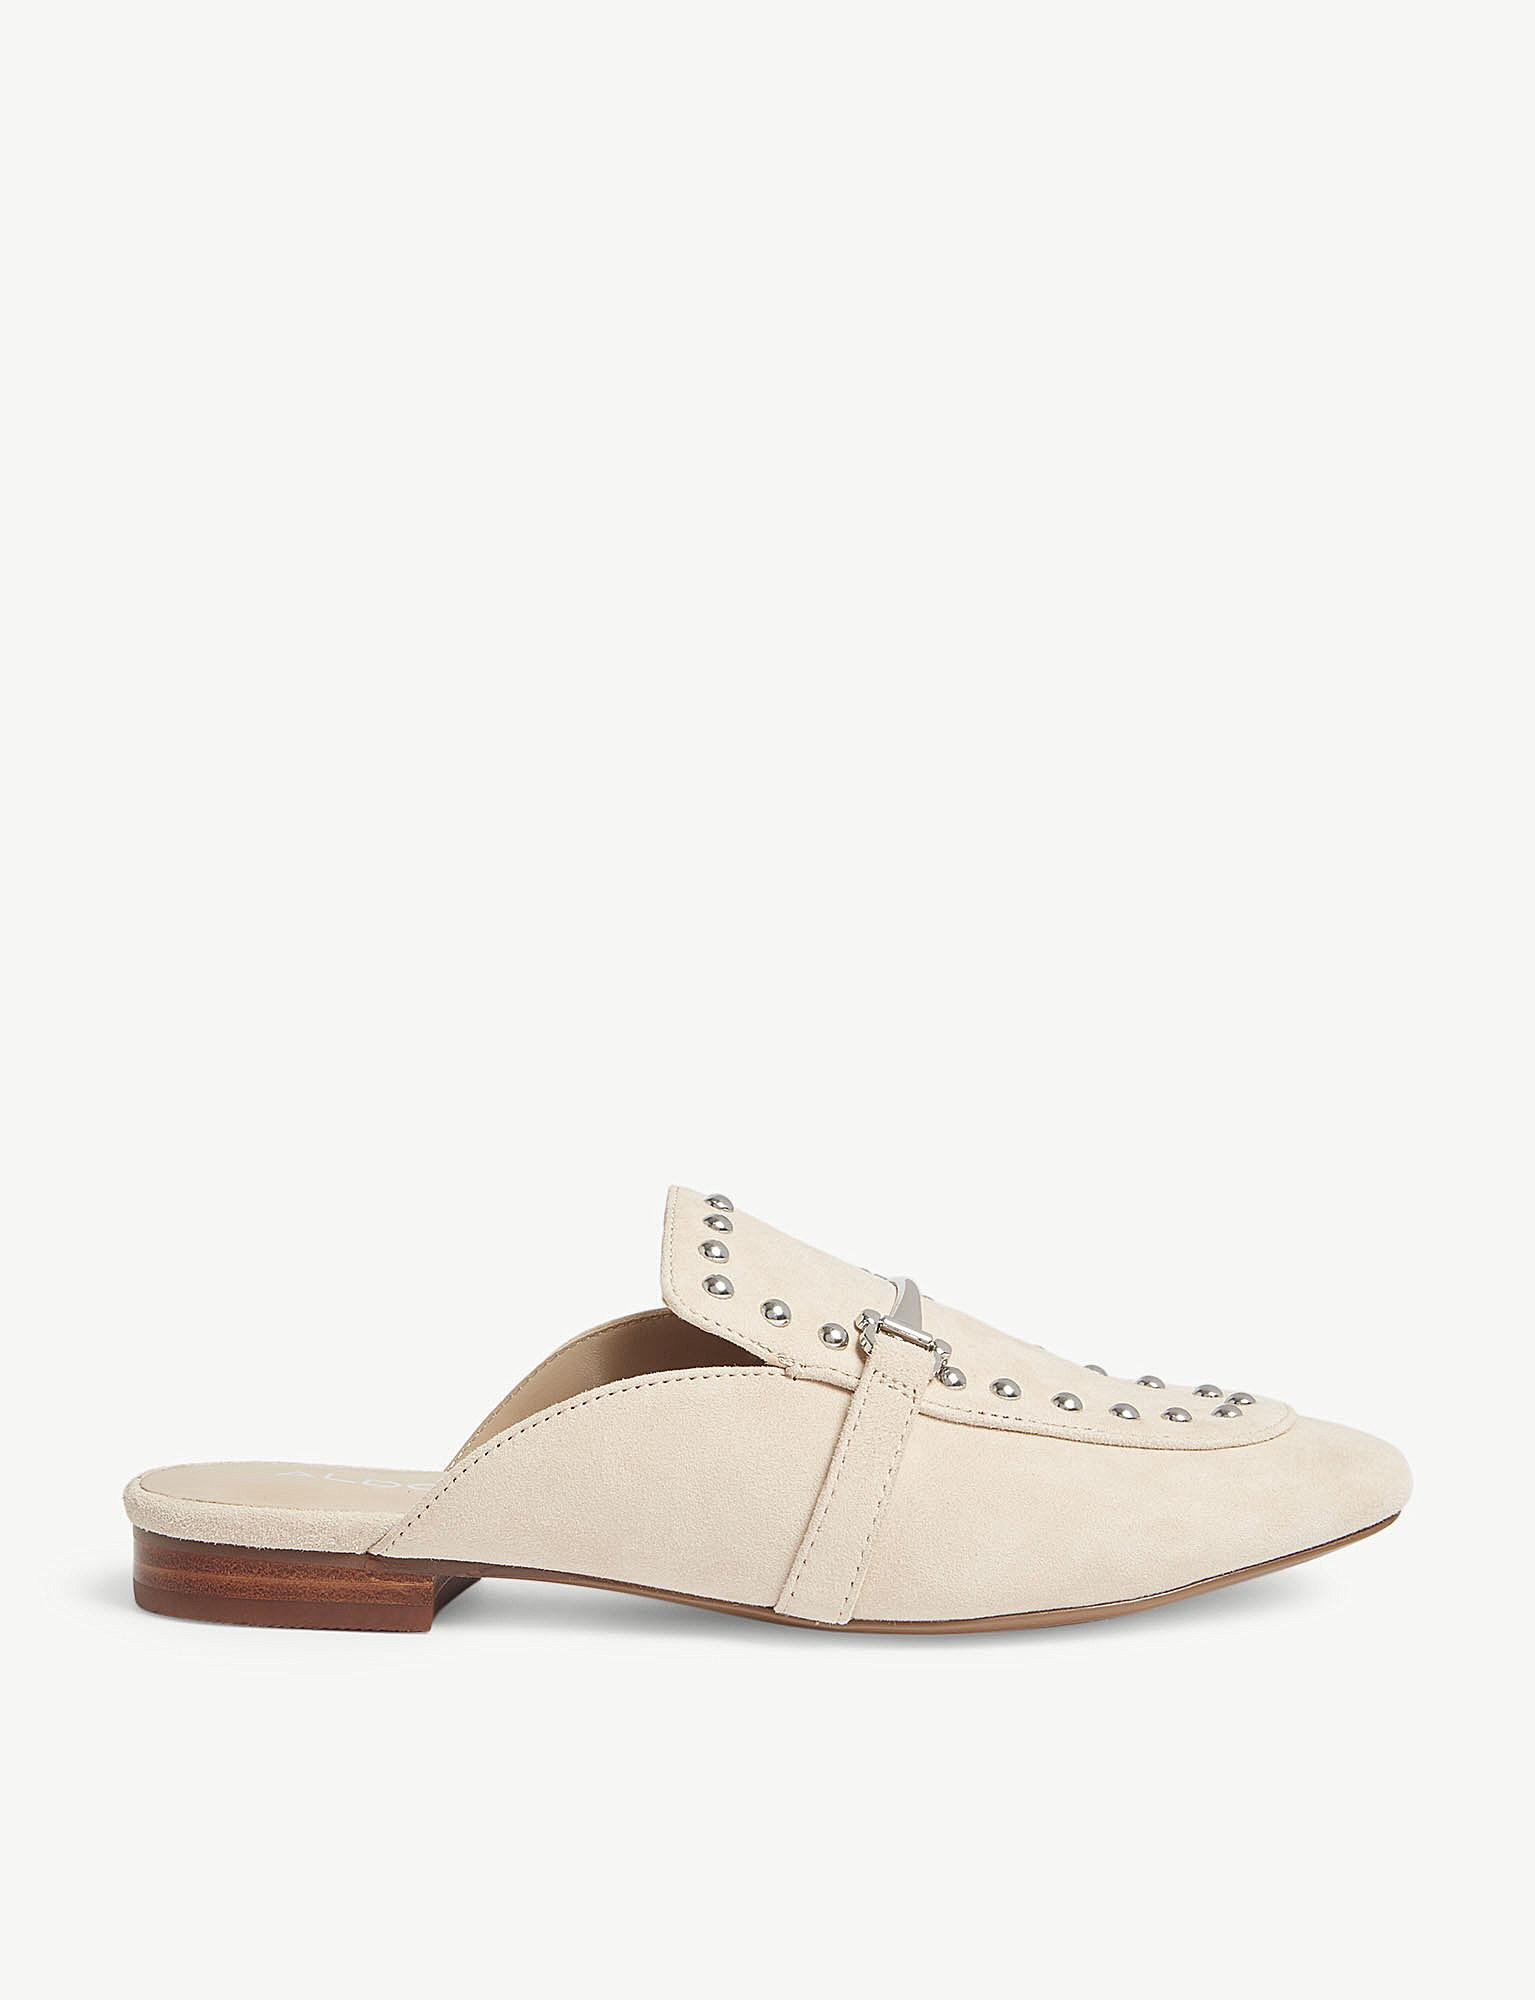 827fd3eeab6 Lyst - ALDO Vergemoli Studded Suede Loafers in Natural